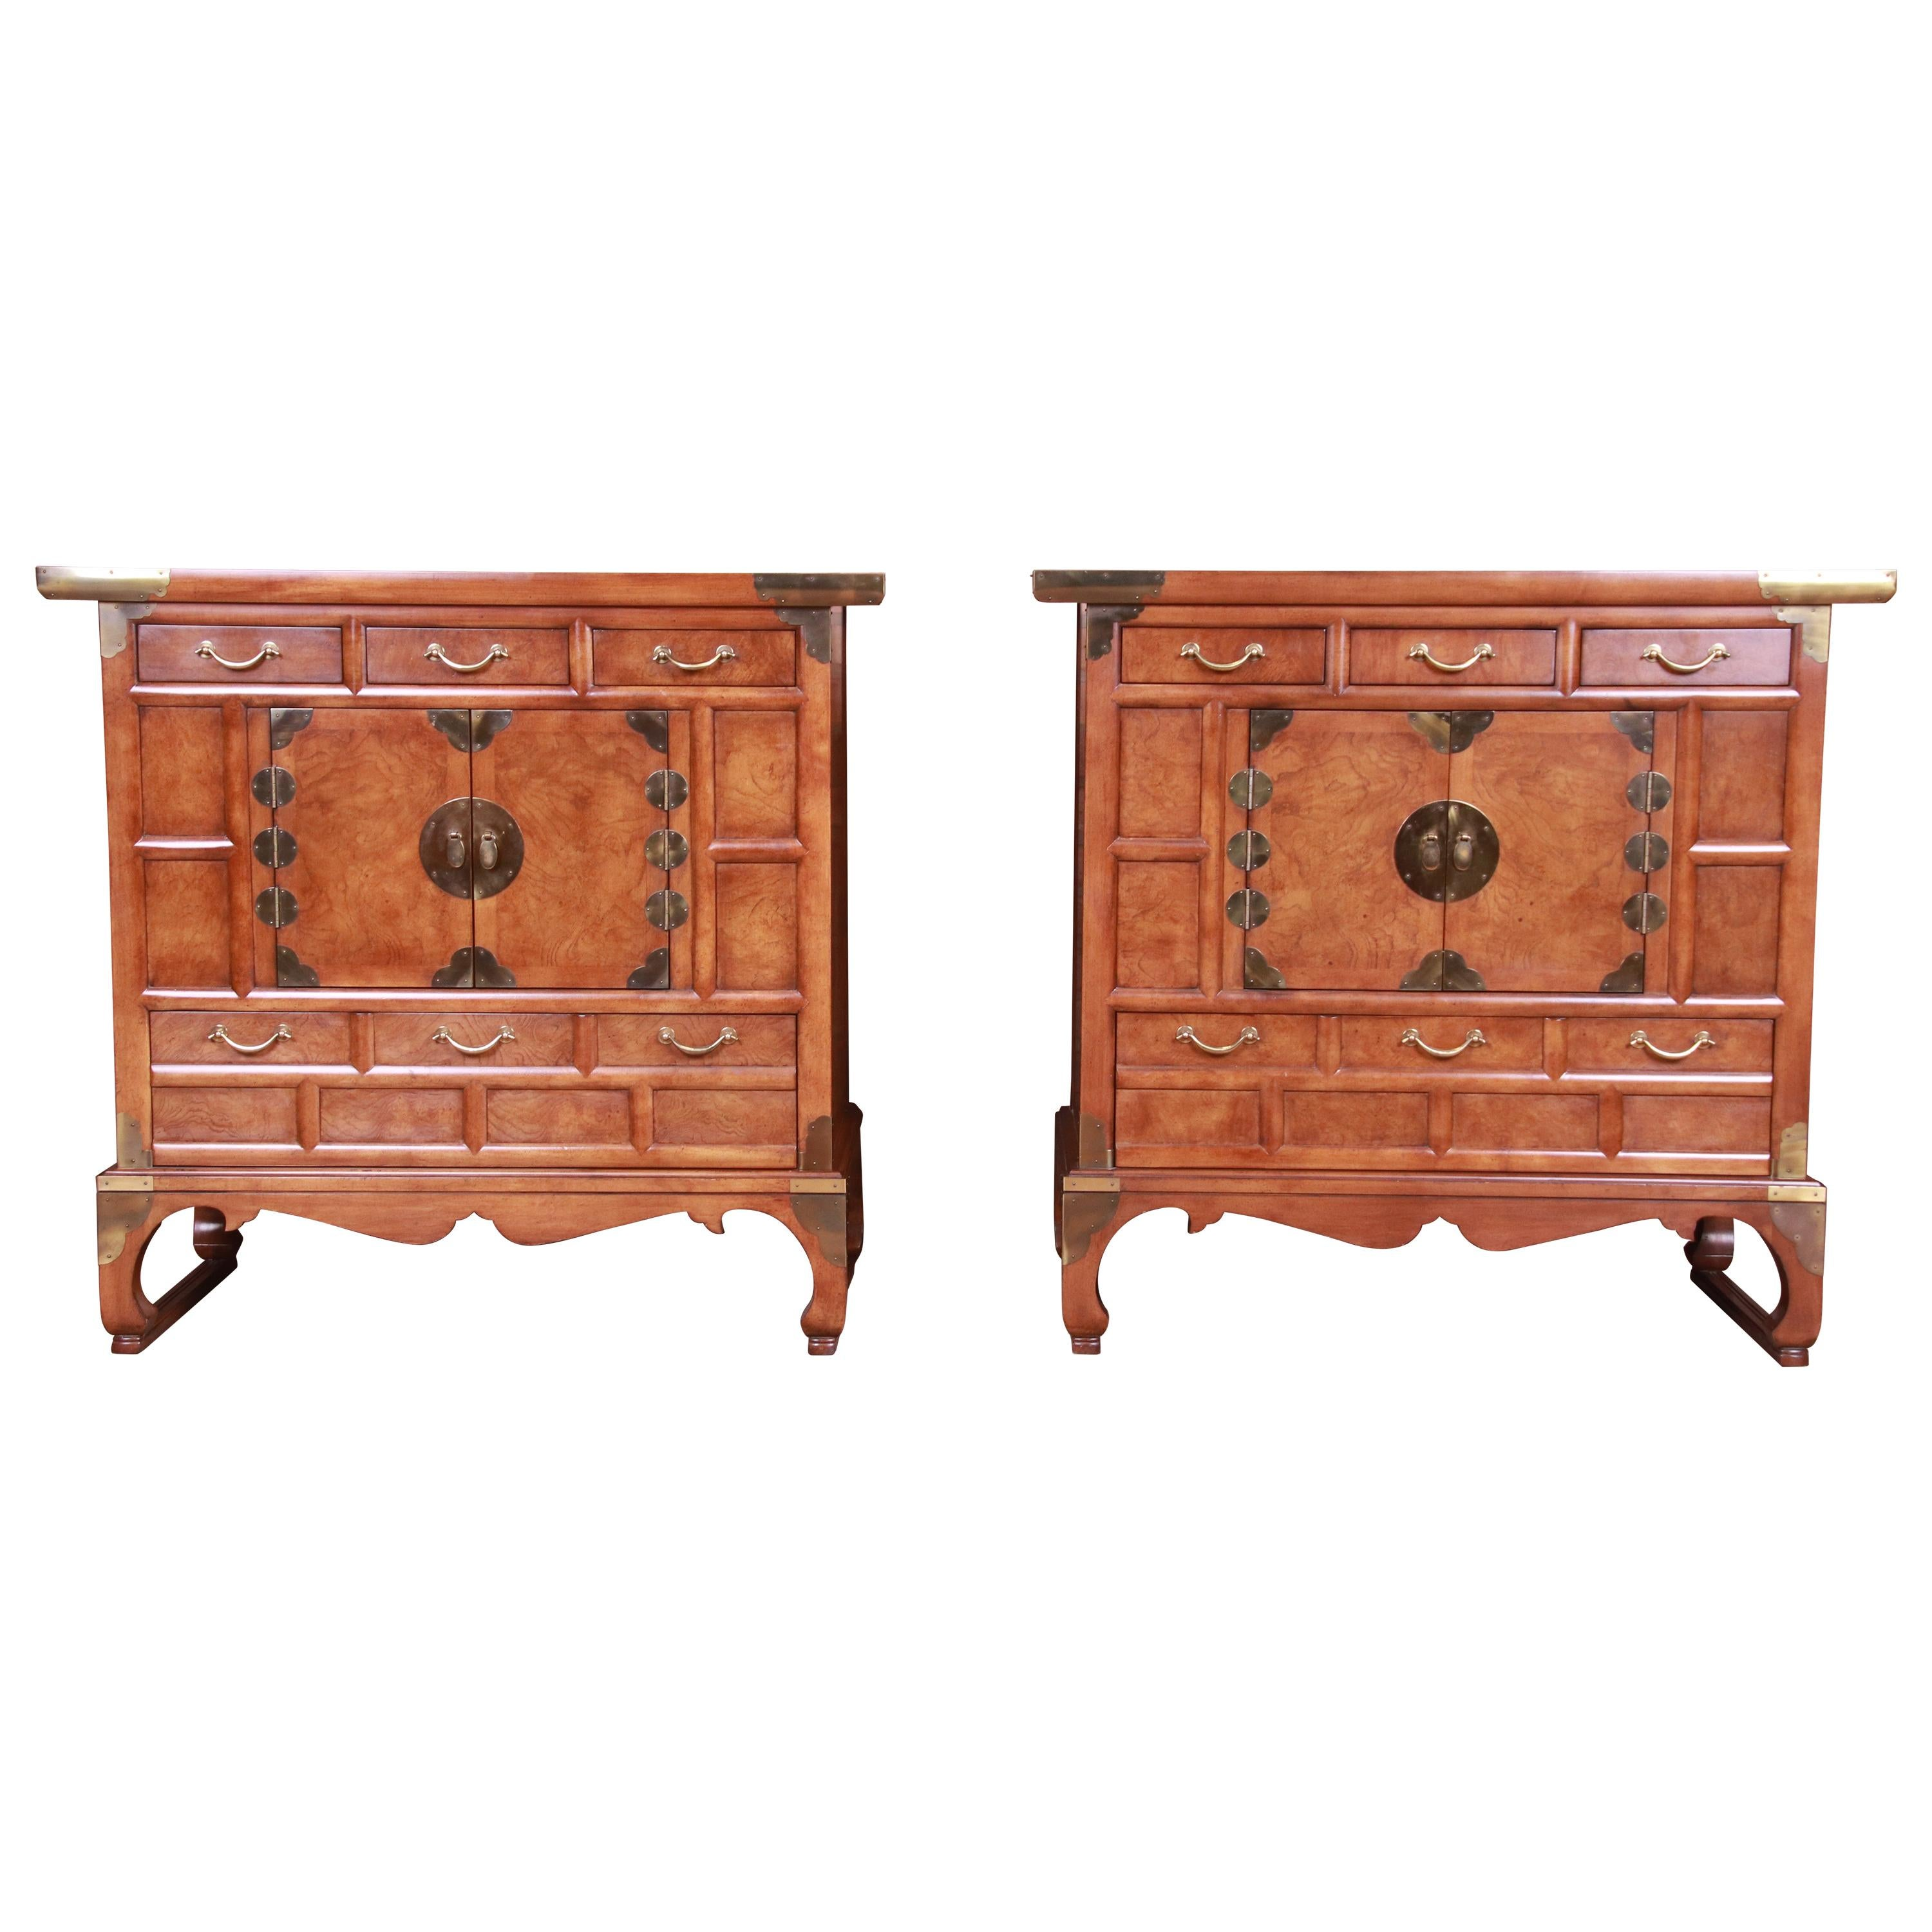 Baker Furniture Hollywood Regency Chinoiserie Burled Walnut Bar Cabinets, Pair